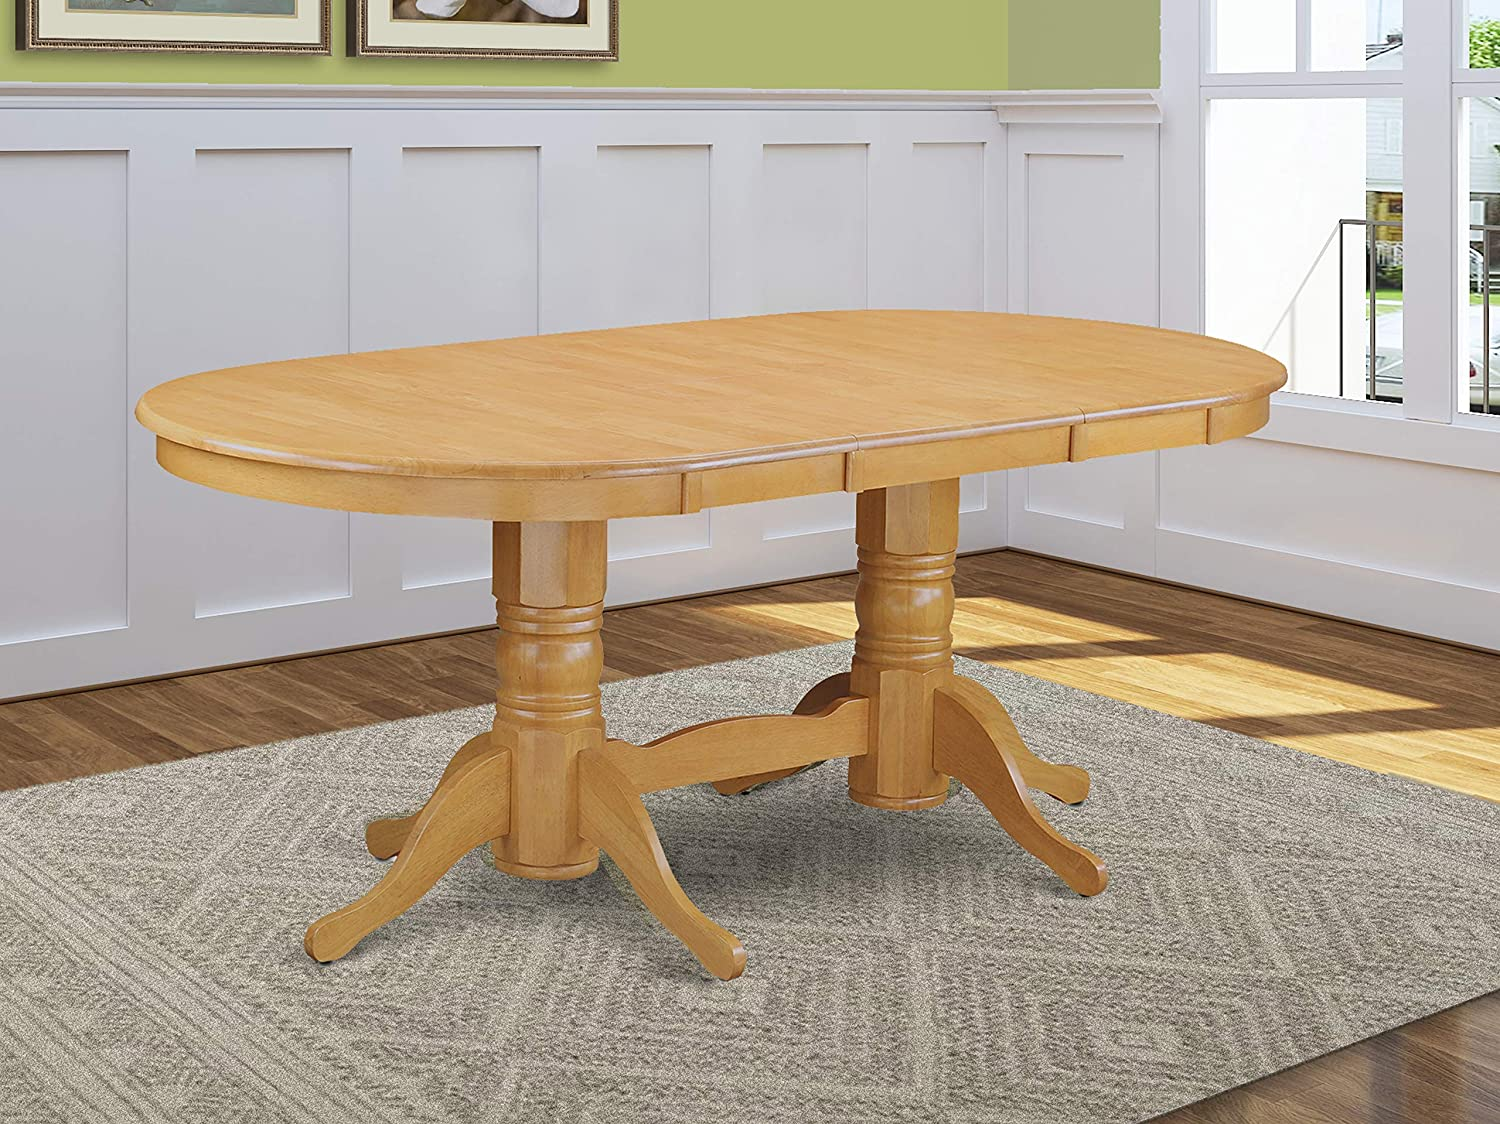 Amazon Com East West Furniture Butterfly Leaf Oval Wood Dining Table Oak Table Top And Oak Finish Double Pedestal Legs Solid Wood Frame Dinner Table Furniture Decor